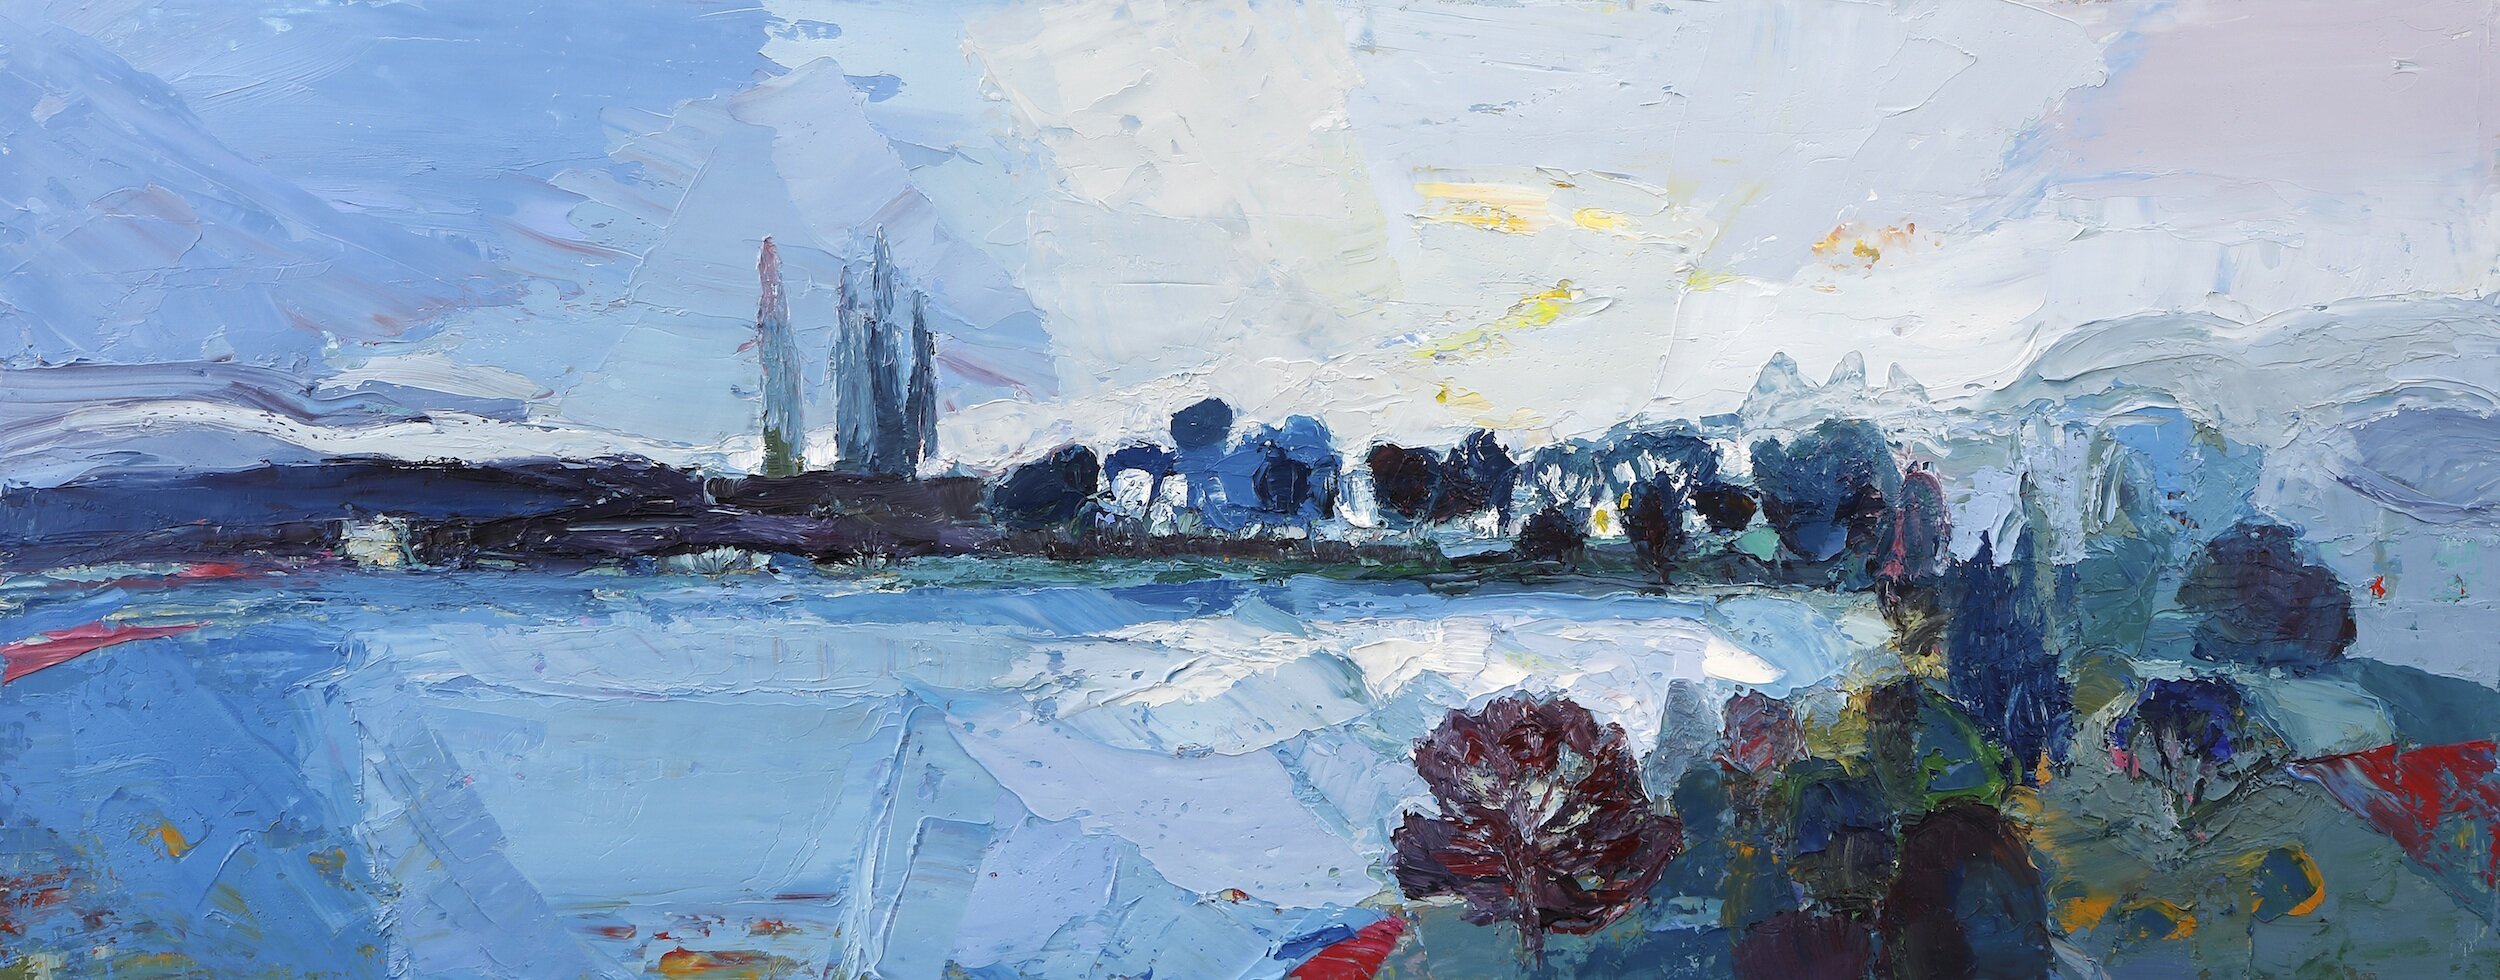 Title: Whatever the Weather  Size: 12x30in  Medium: Oil on Canvas  Price: £3150